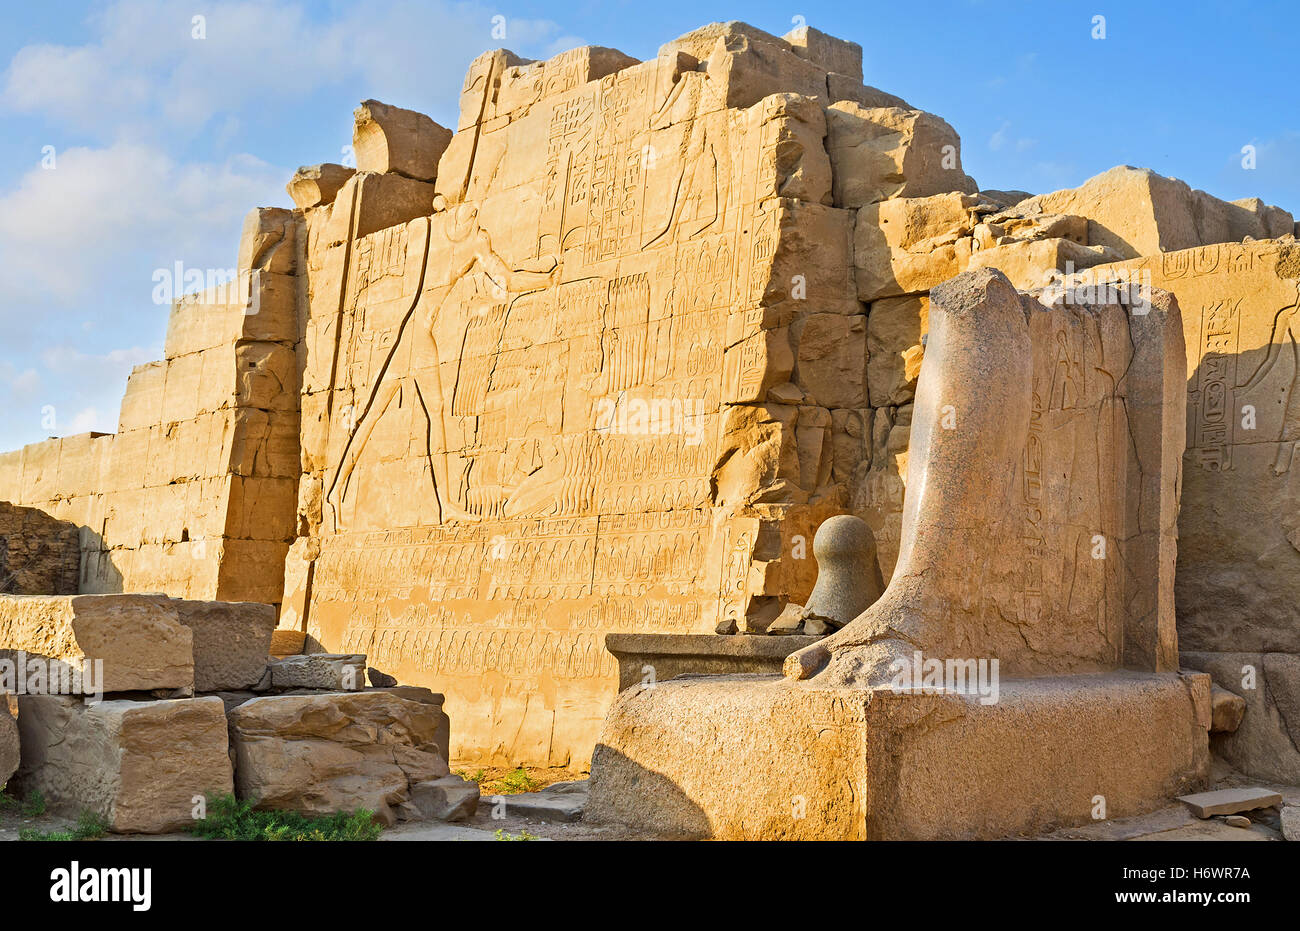 The ancient relief on the Seventh Pylon of Karnak Temple depicts Thutmose III, defiting his enemies, Luxor, Egypt. - Stock Image